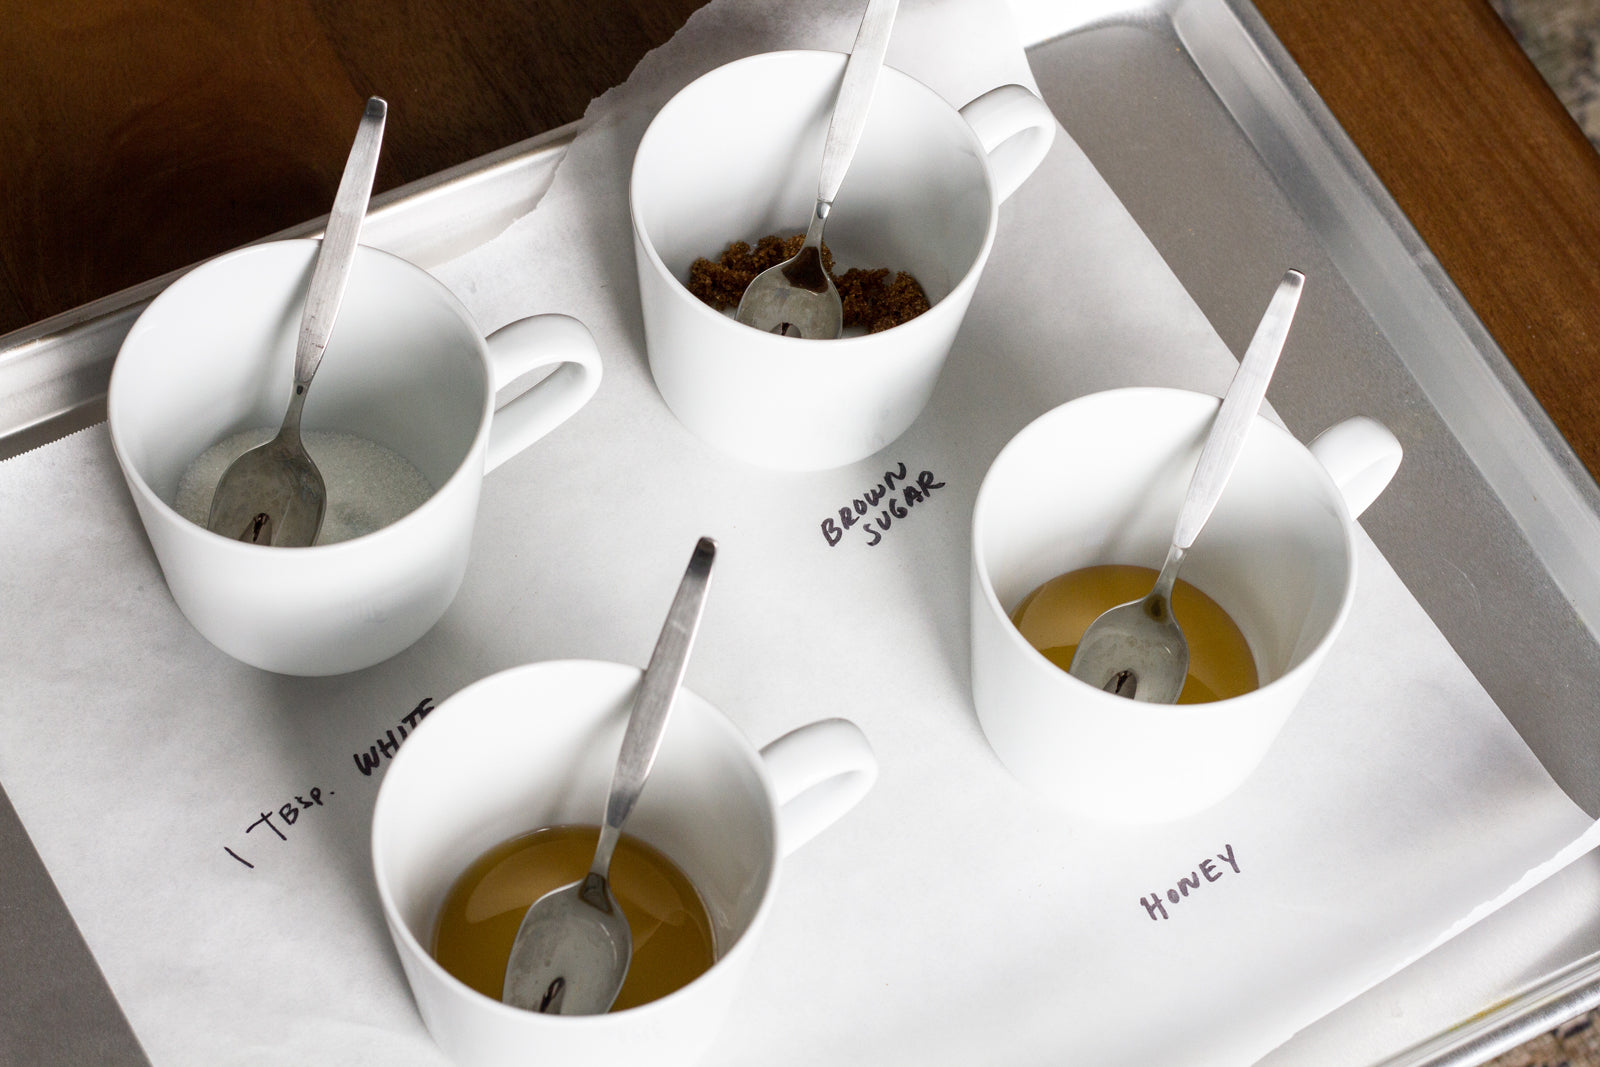 testing the best sweetener for mulled wine: brown sugar, honey, maple syrup, and white sugar